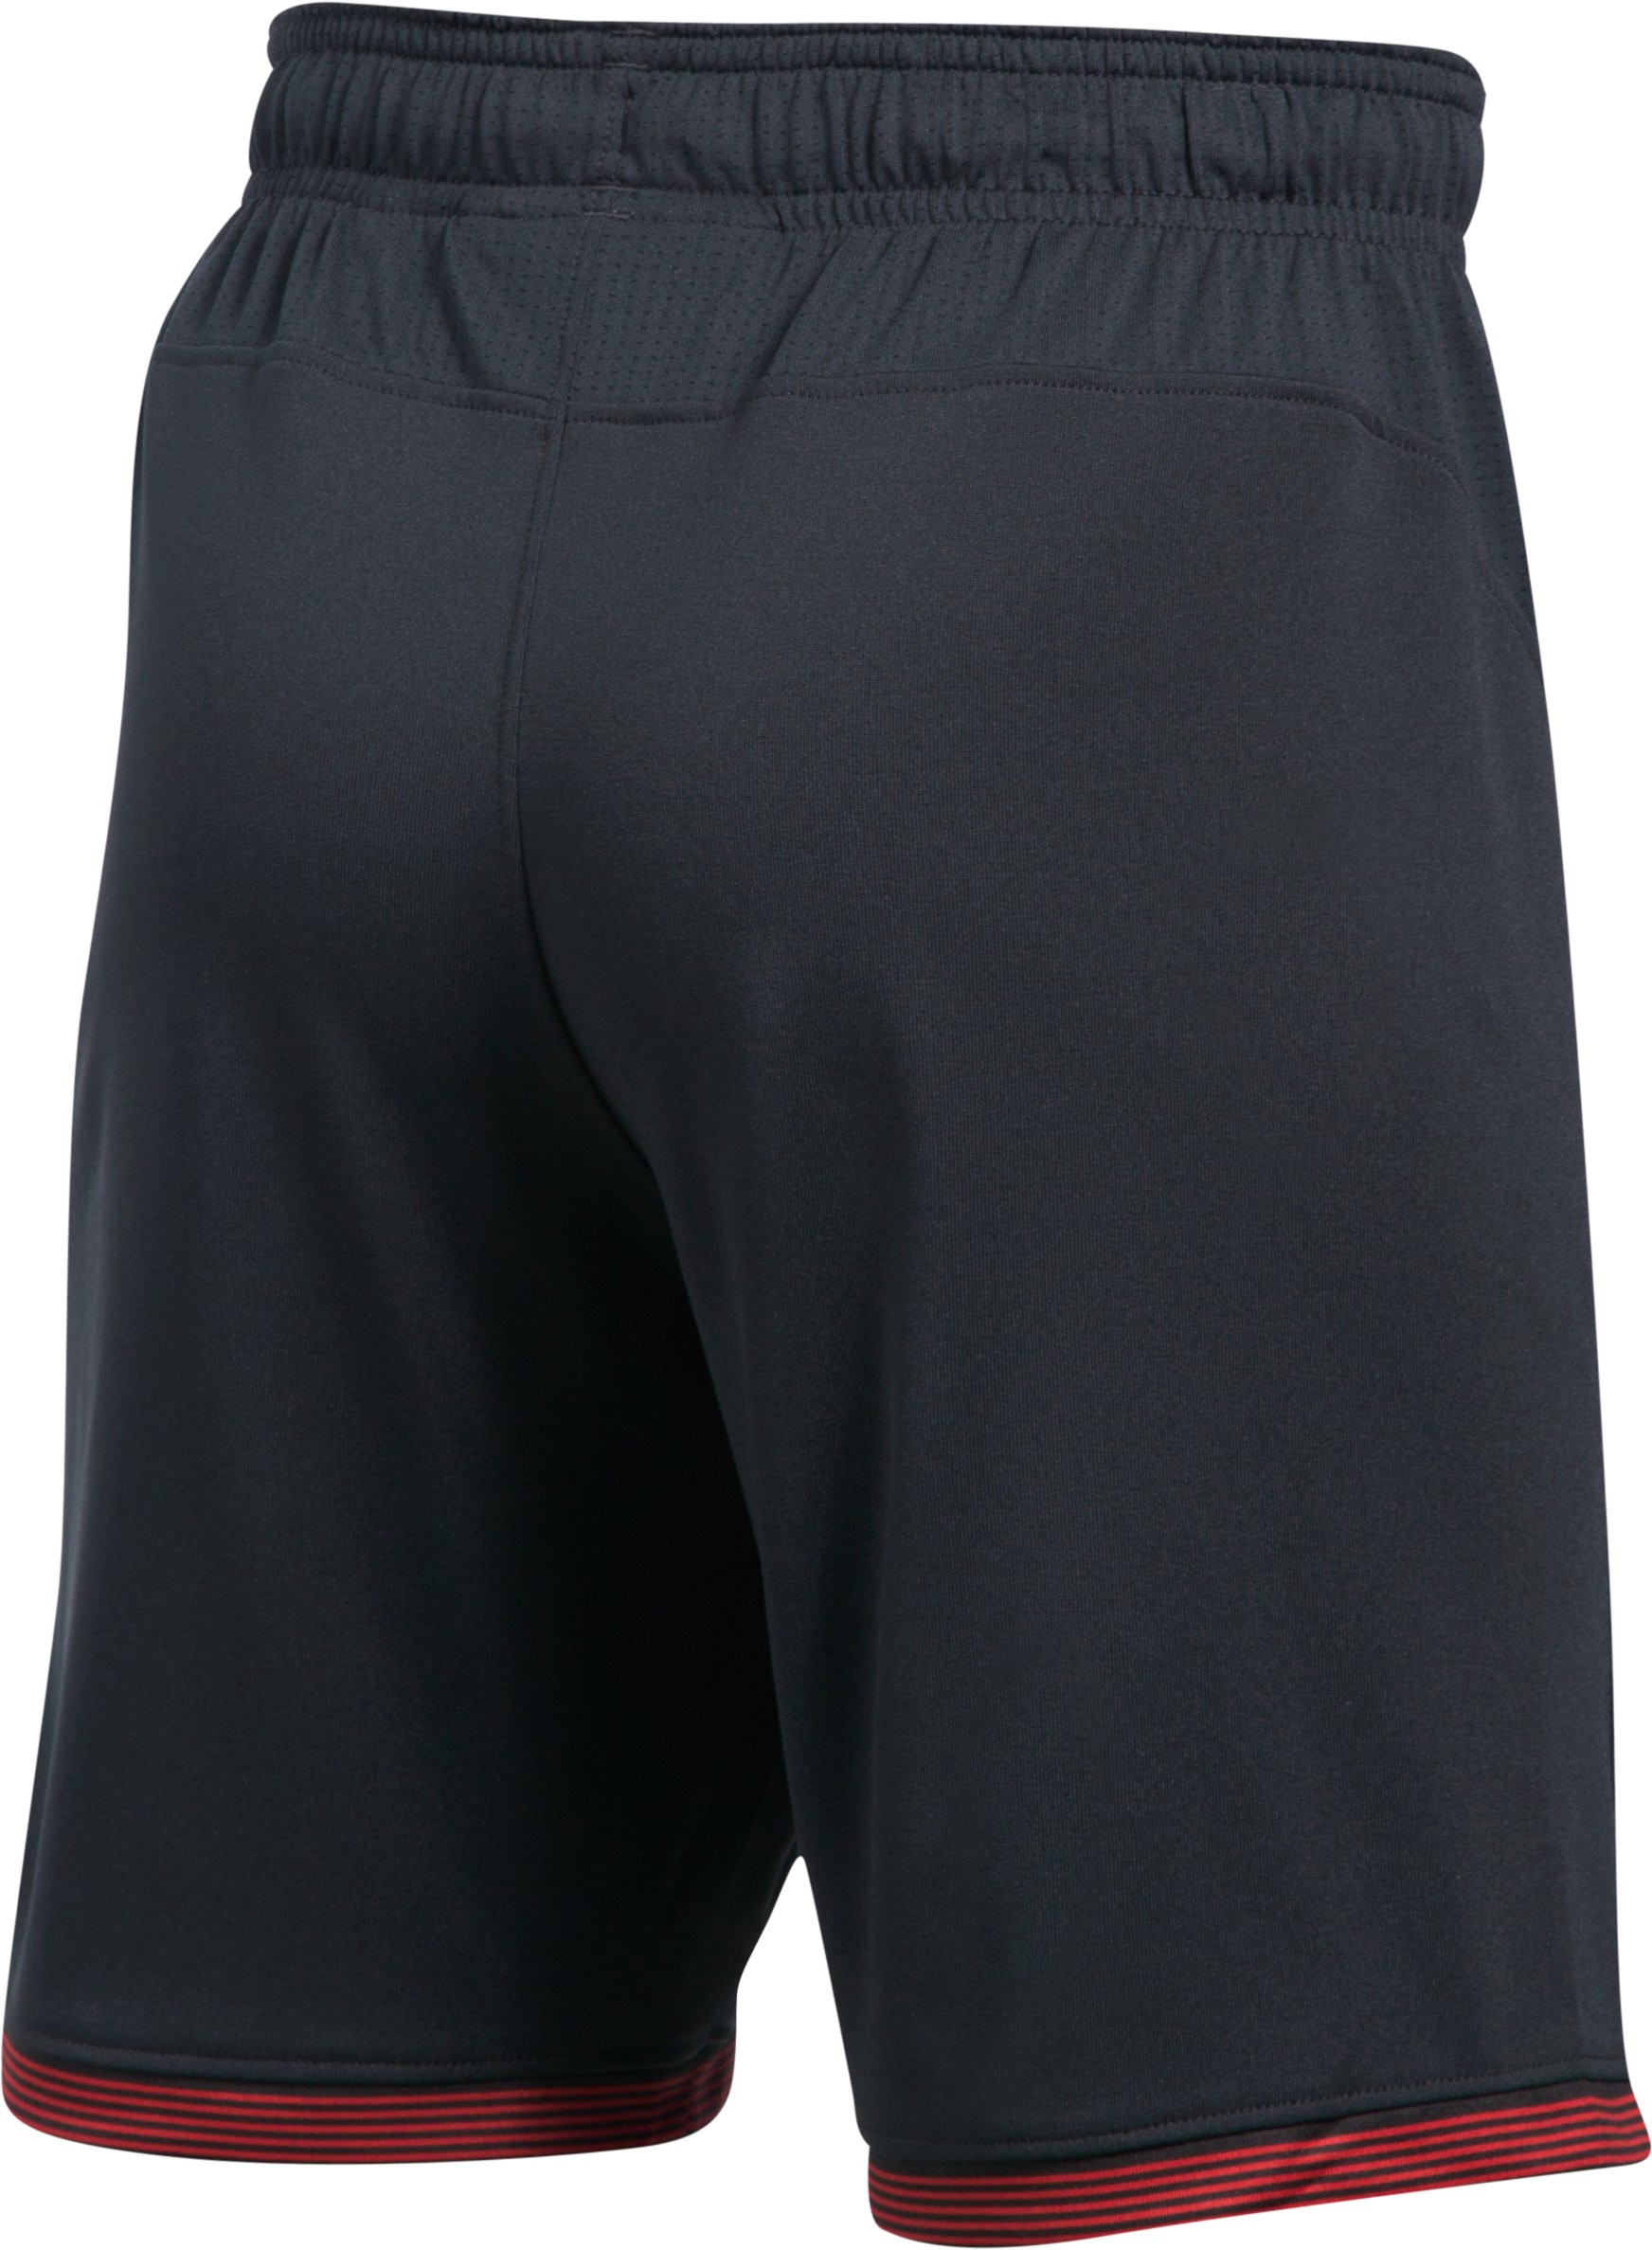 Kids' Southampton Rep Shorts, Black